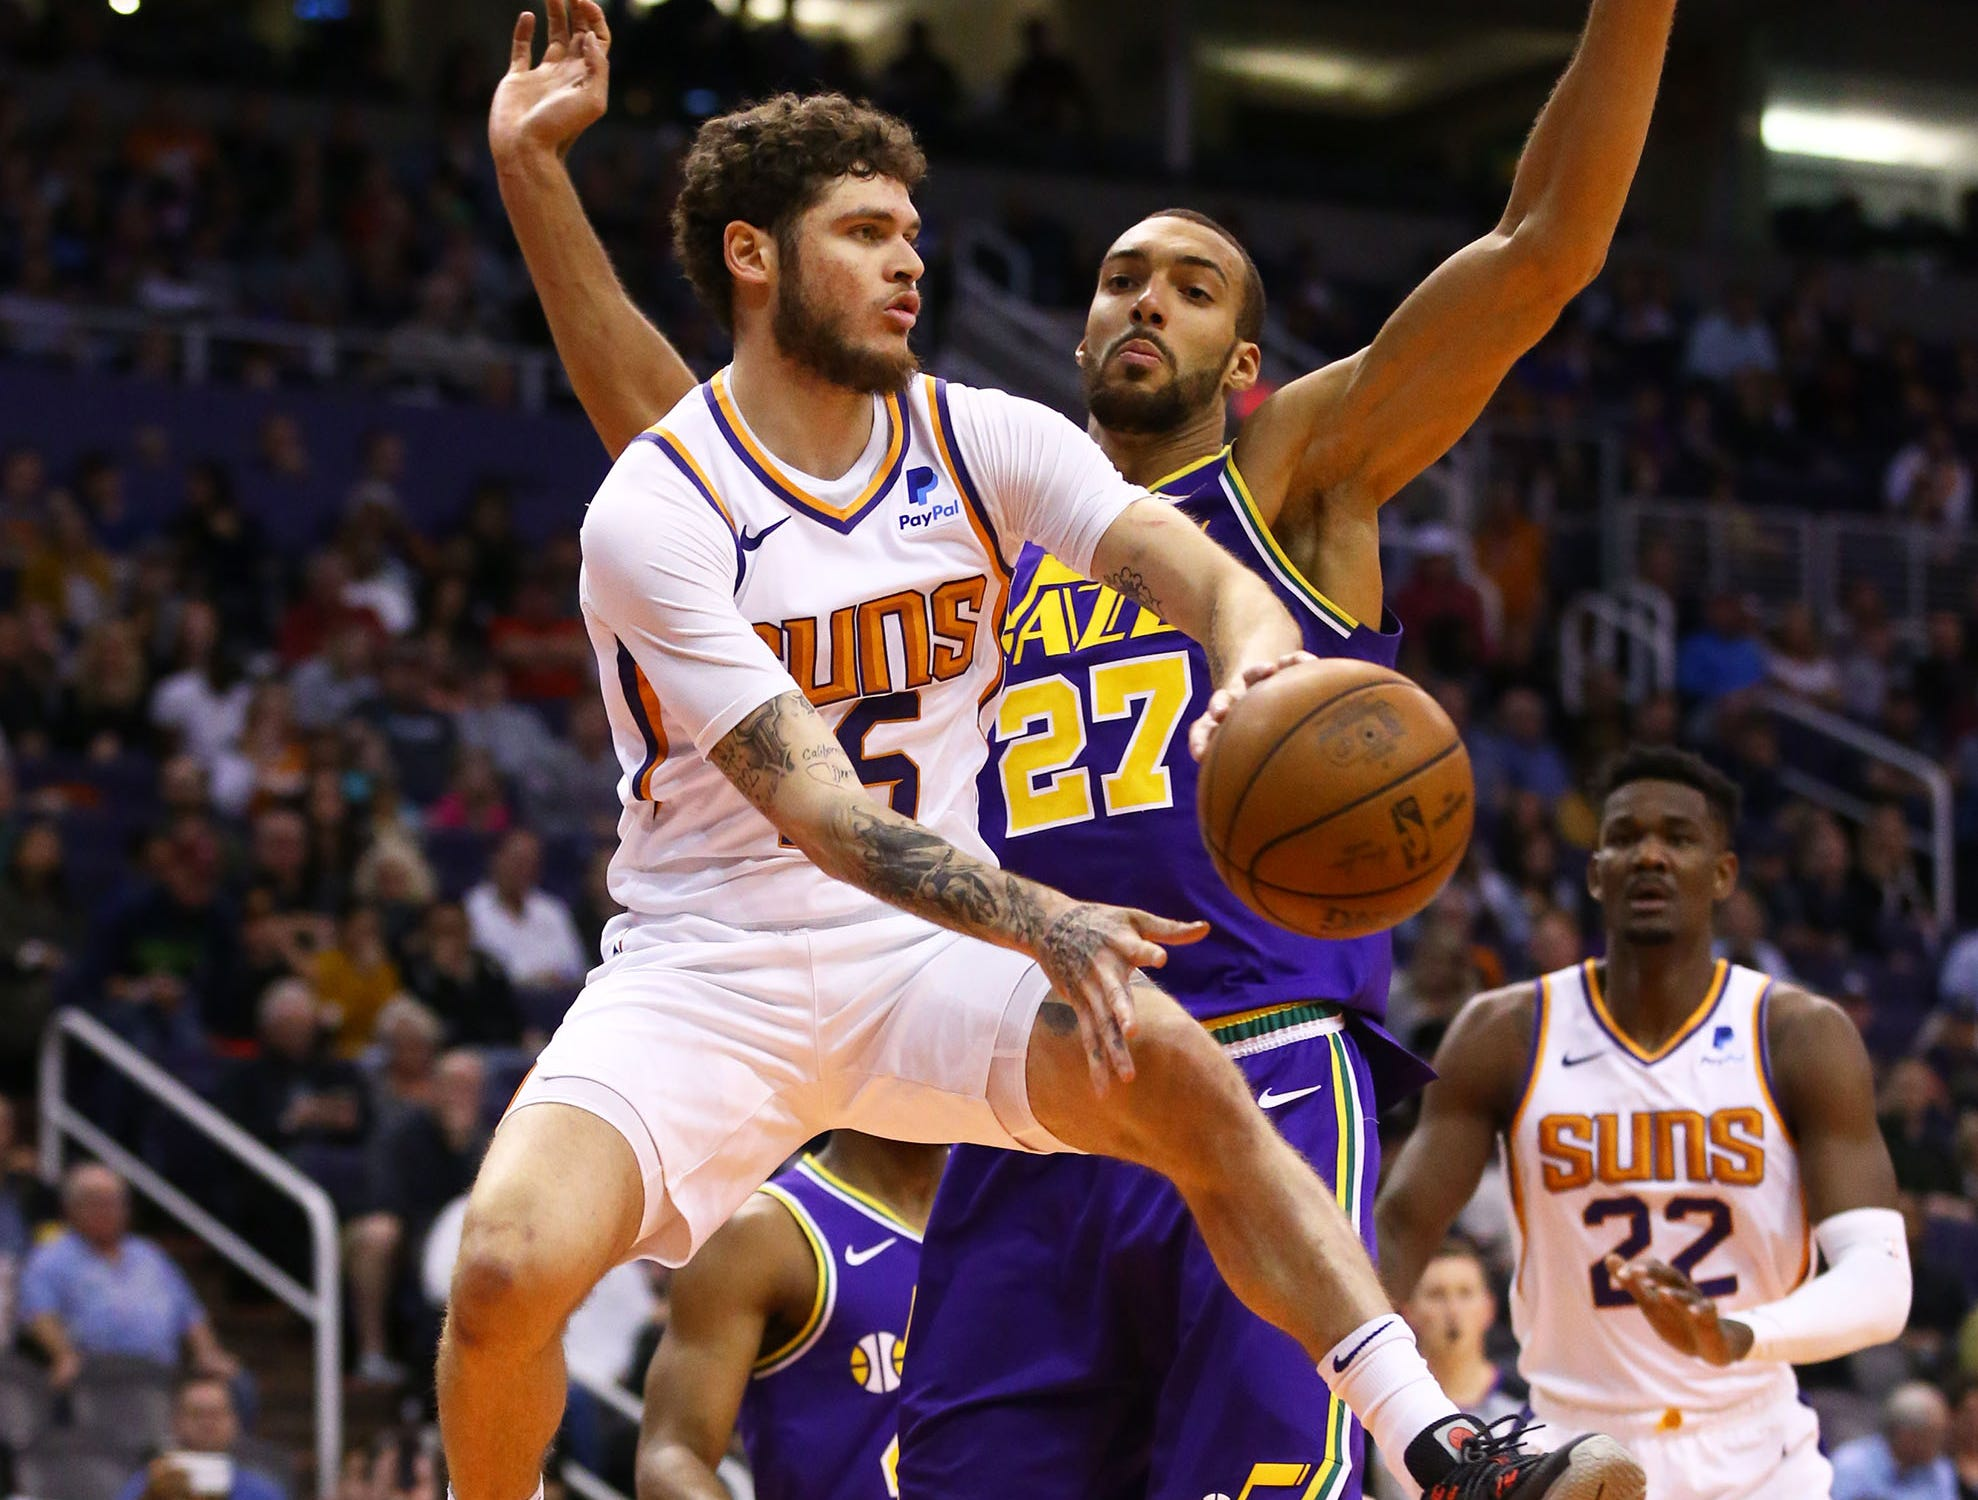 Phoenix Suns guard Tyler Johnson (16) passes the ball against Utah Jazz center Rudy Gobert (27) in the second half on Mar. 13, 2019 at Talking Stick Resort Arena in Phoenix, Ariz.